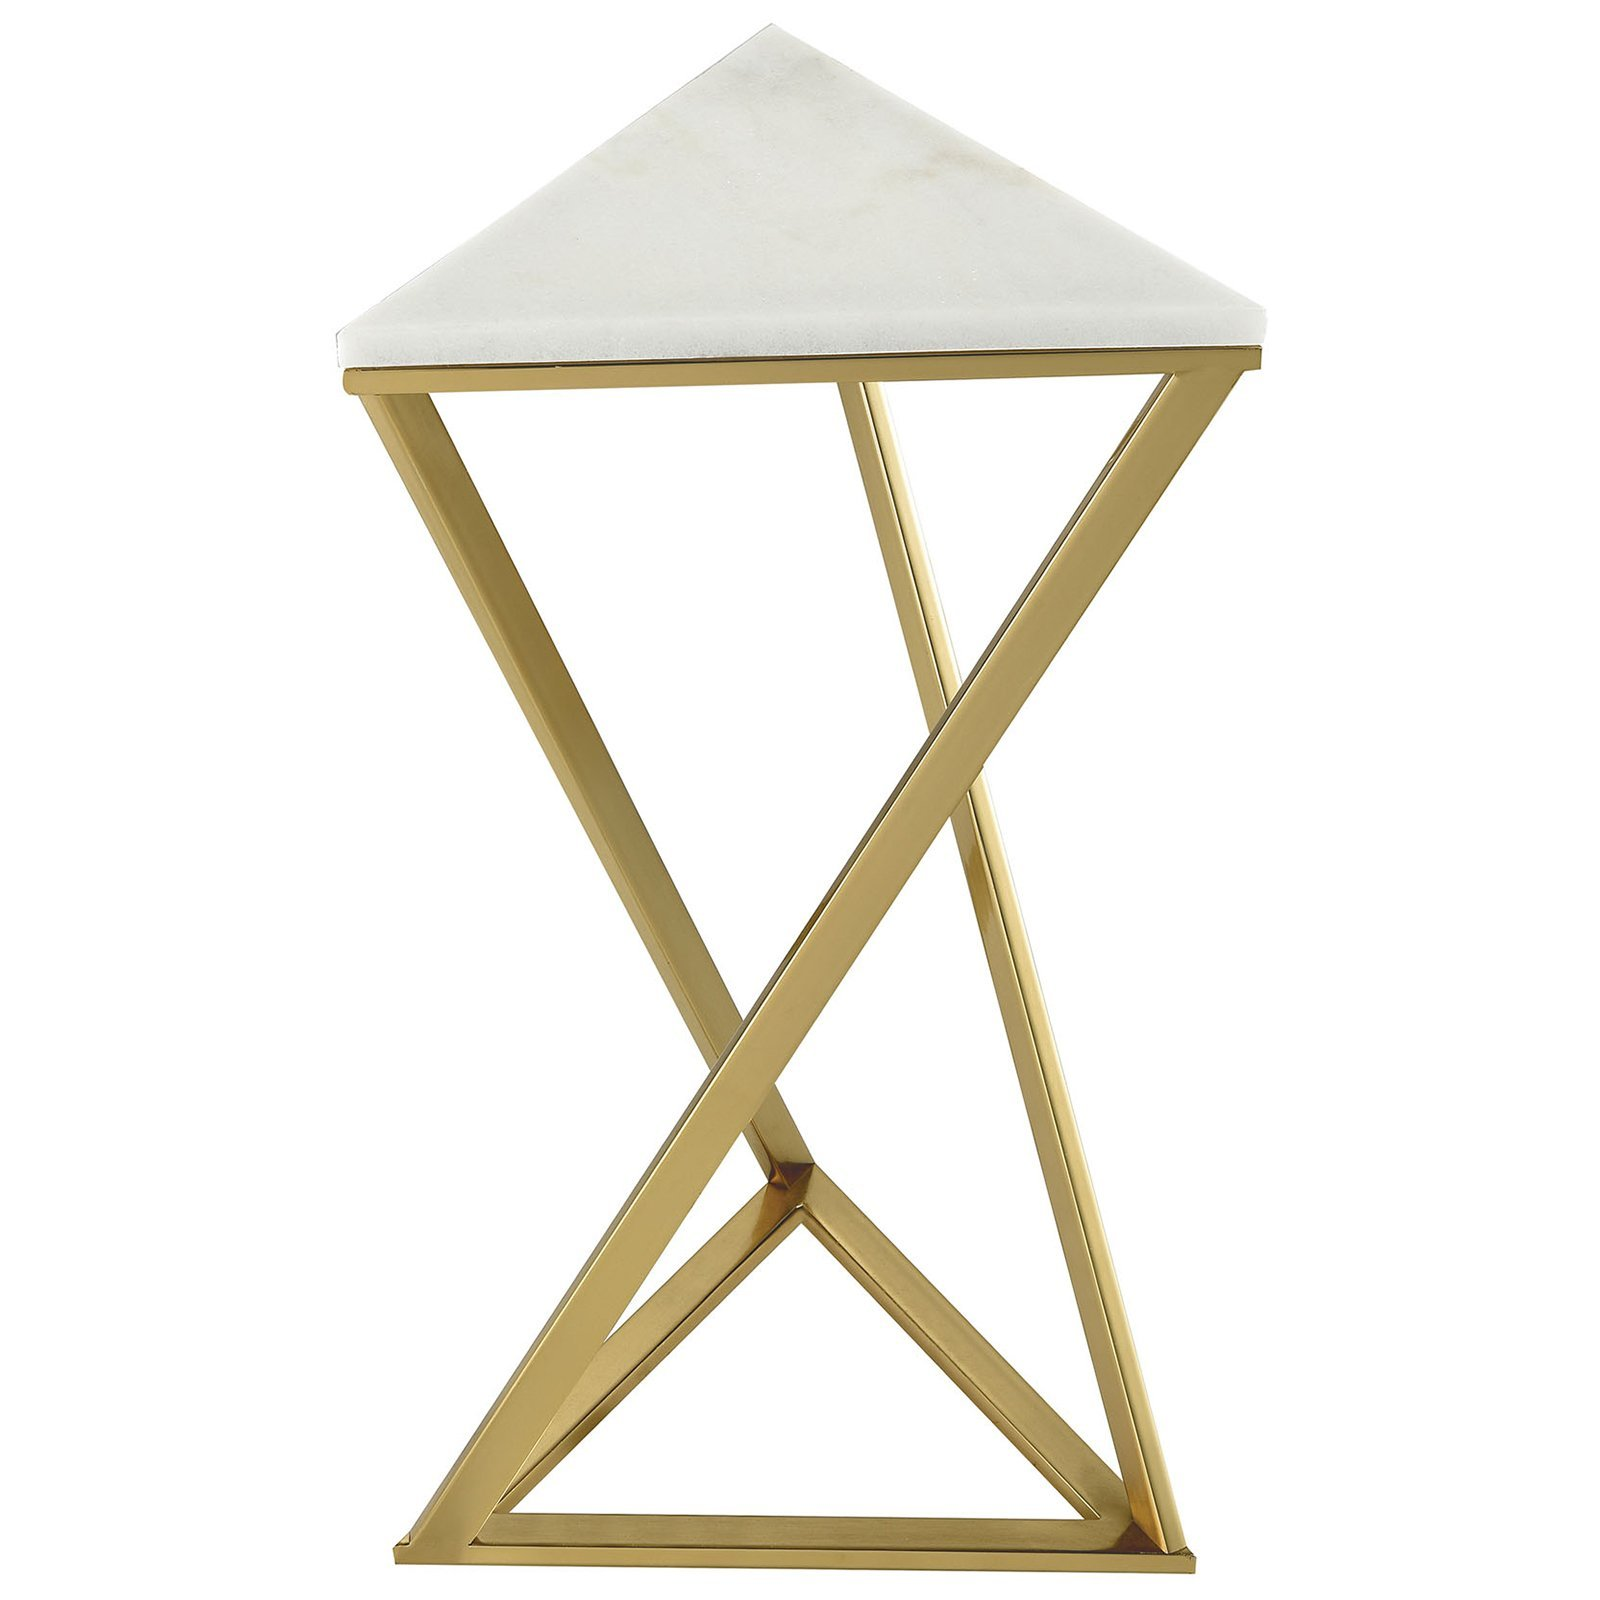 garde contemporary accent tables white fratantoni lifestyles gold table with marble top plated metal genuine antique oak end diy sliding door wicker patio and chairs parasol